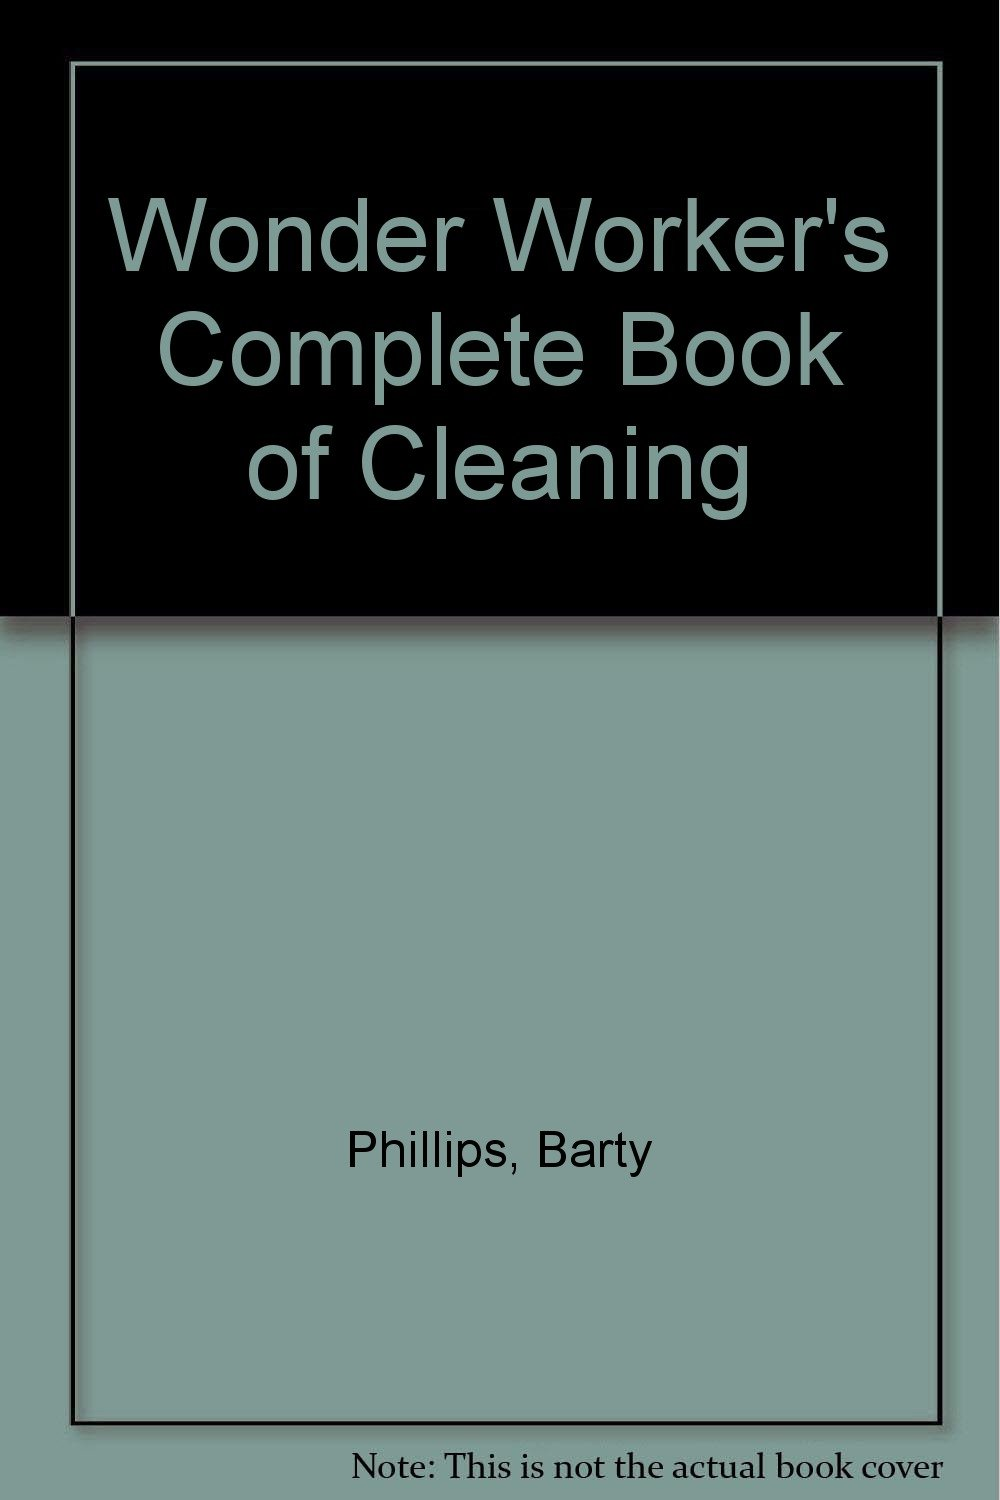 Wonder Worker's Complete Book of Cleaning